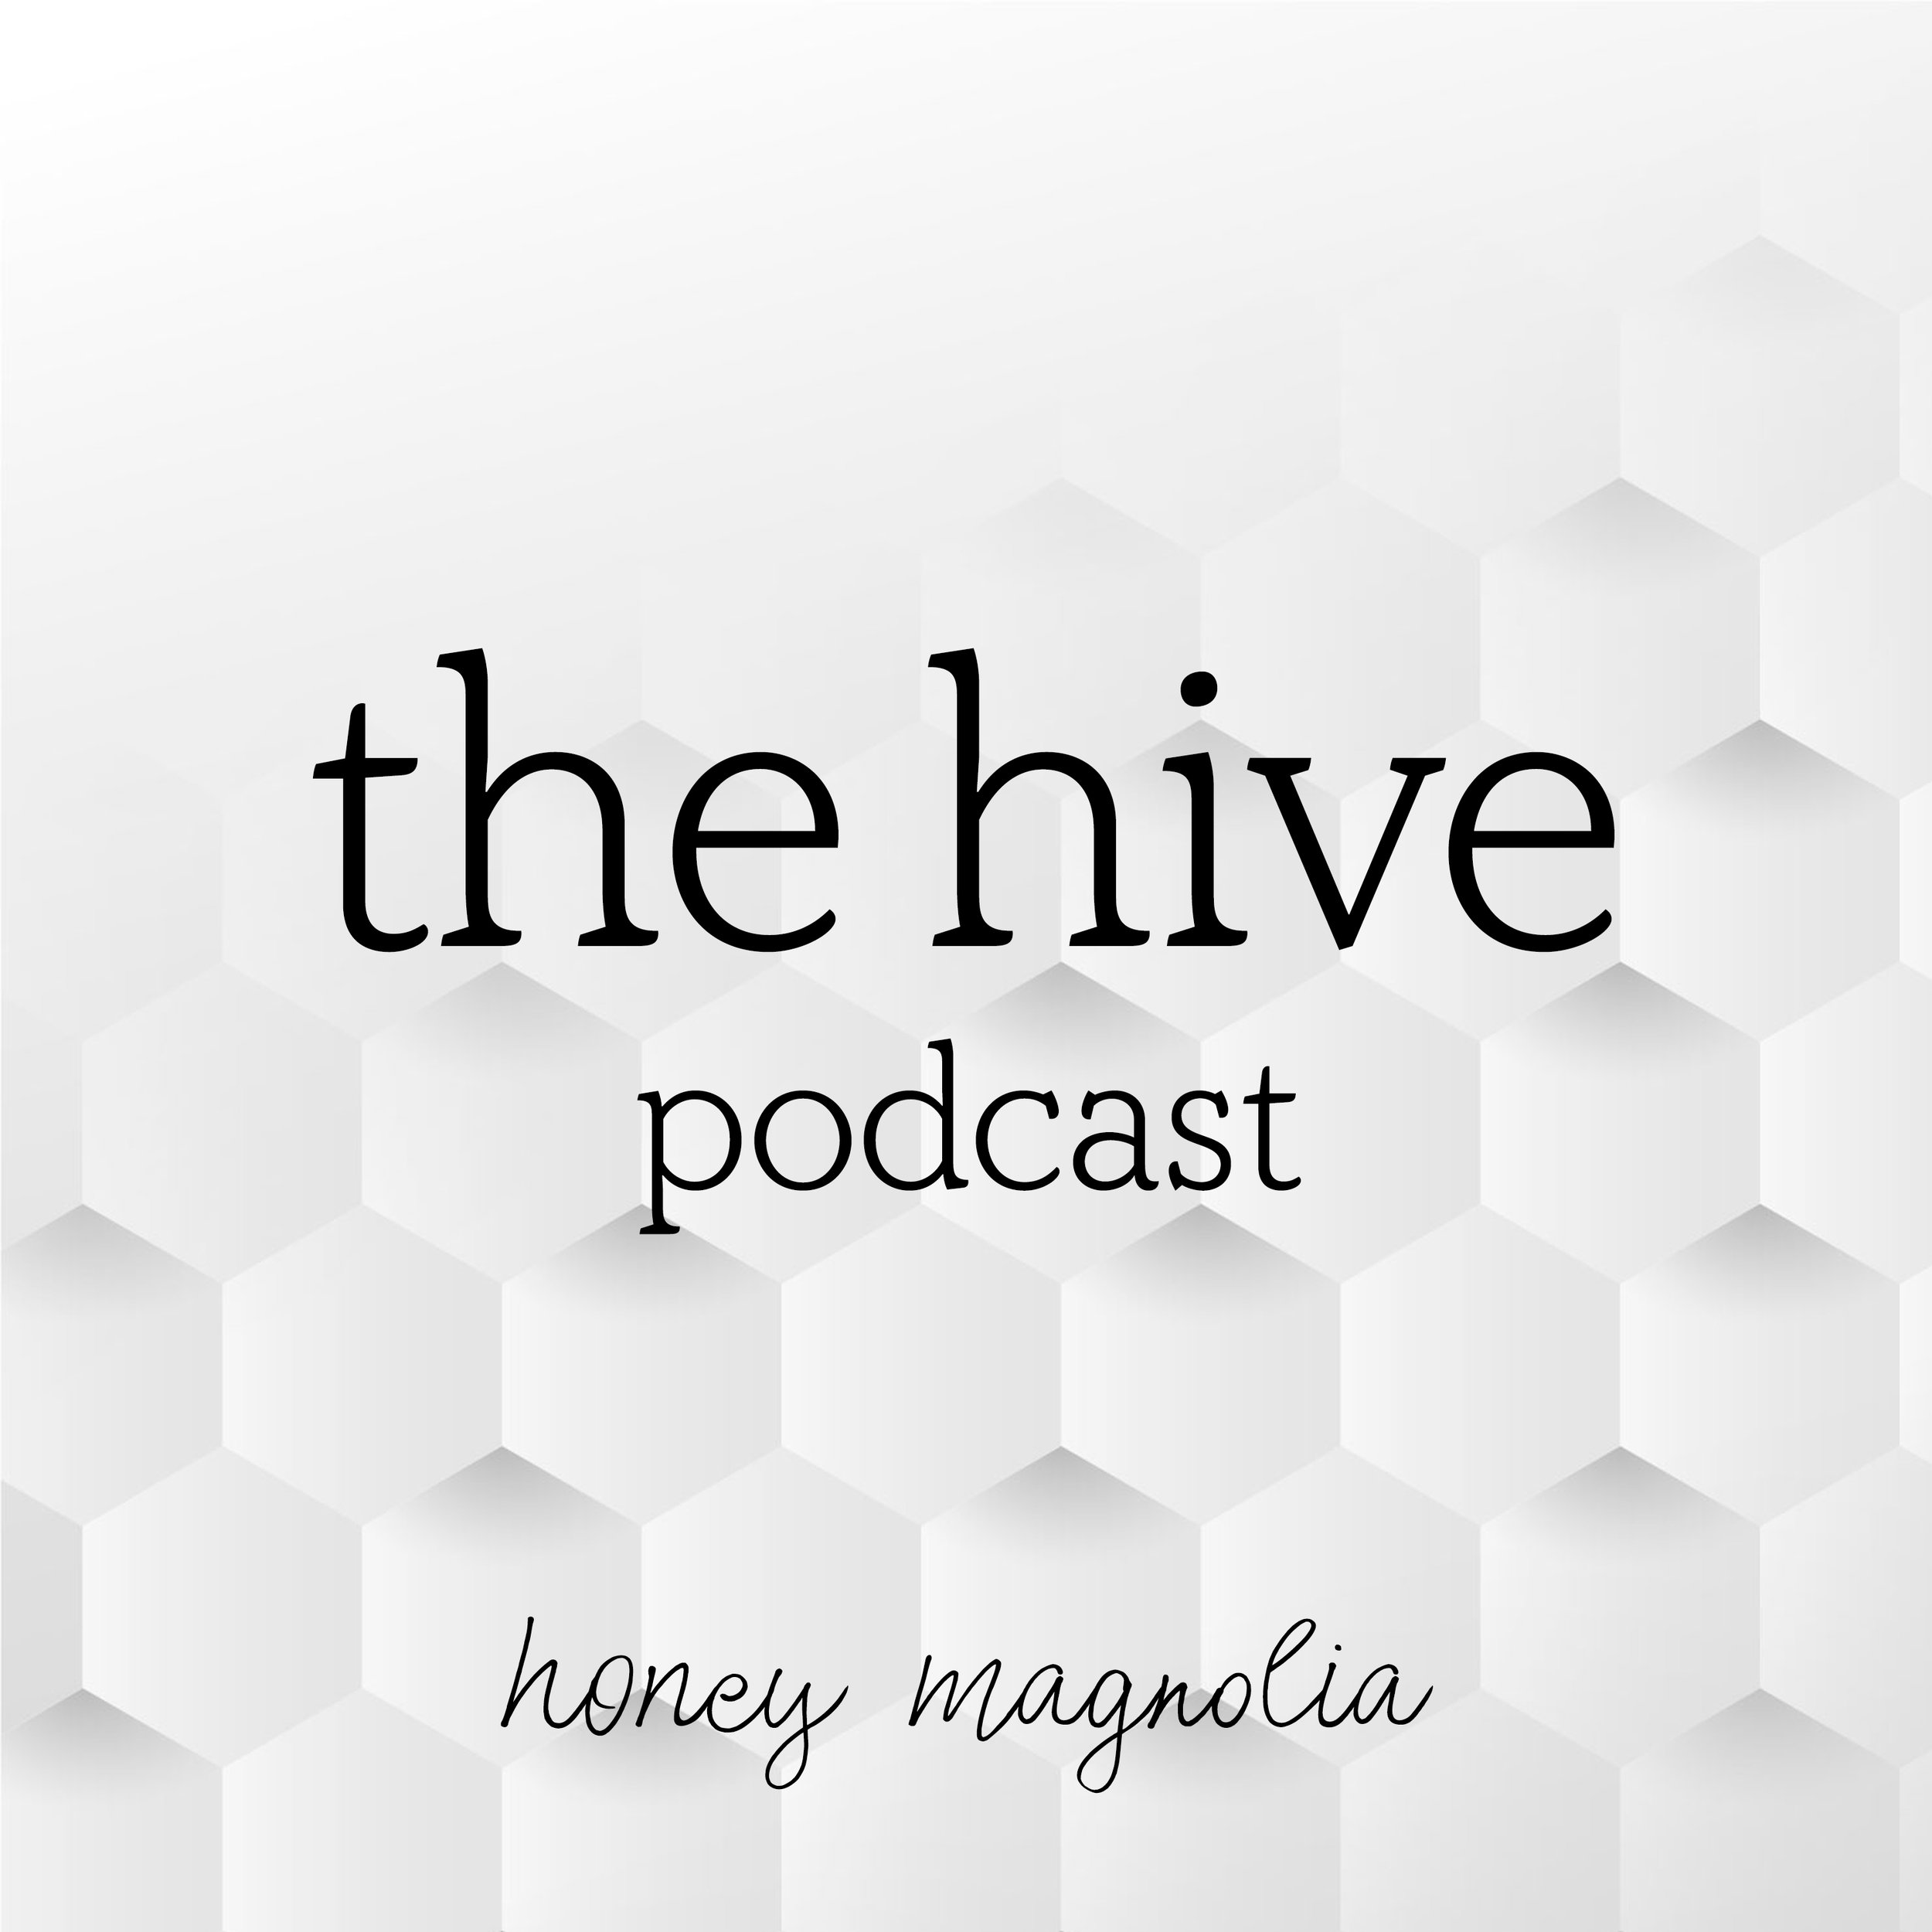 the hive podcast.jpg